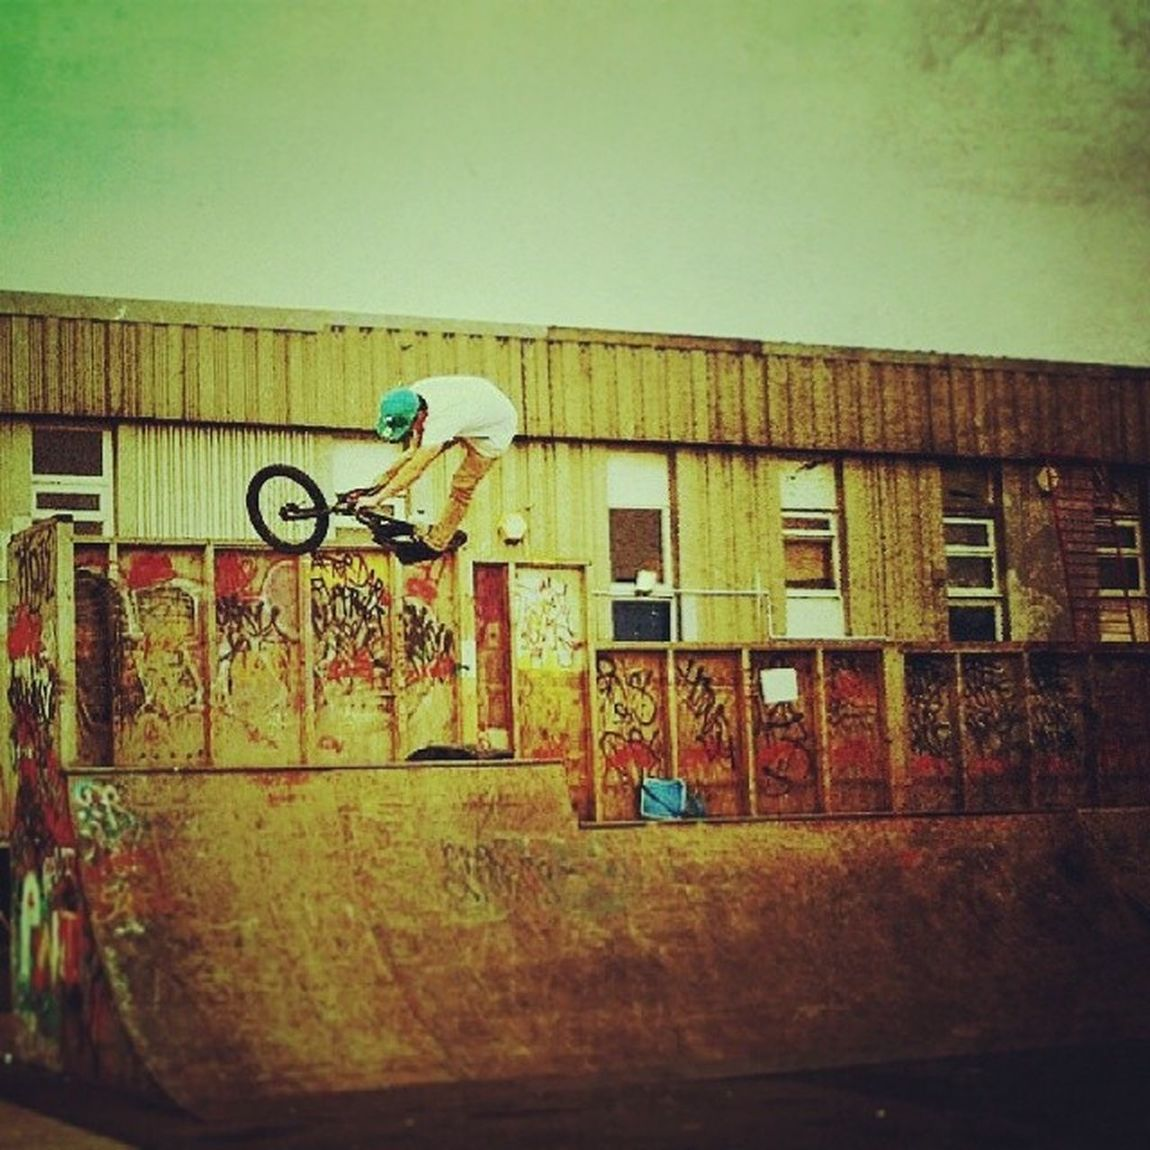 Back in the day.Wished I kept my bmx Bmx  Ramps Tabletop Wethepeoplebikeco wtpbikes properbikeco s&mbikeco